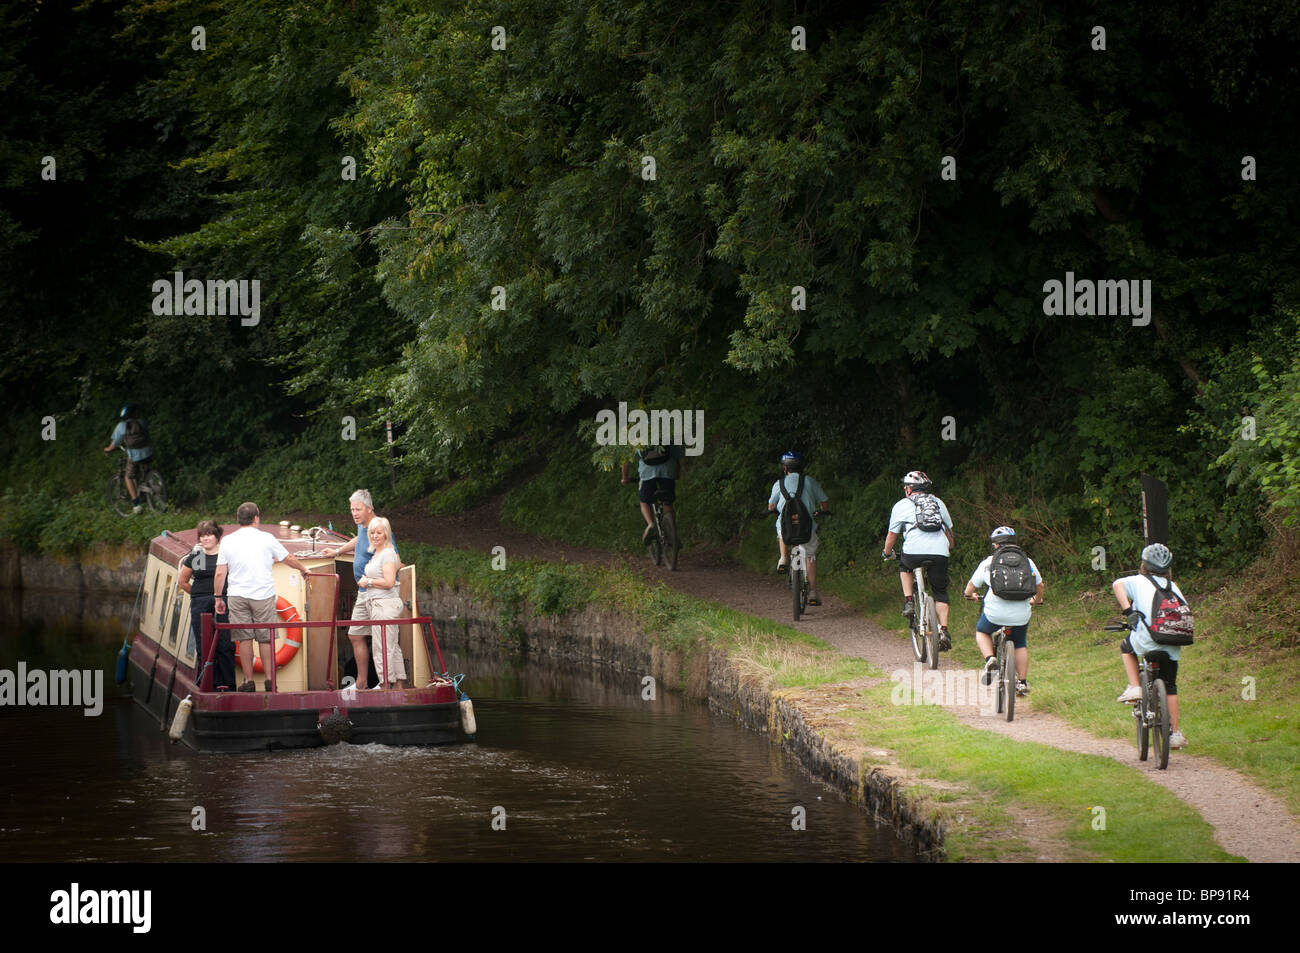 Cyclists on the towpath and a narrowboat on the Monmouthshire and Brecon Canal, South Wales UK - Stock Image